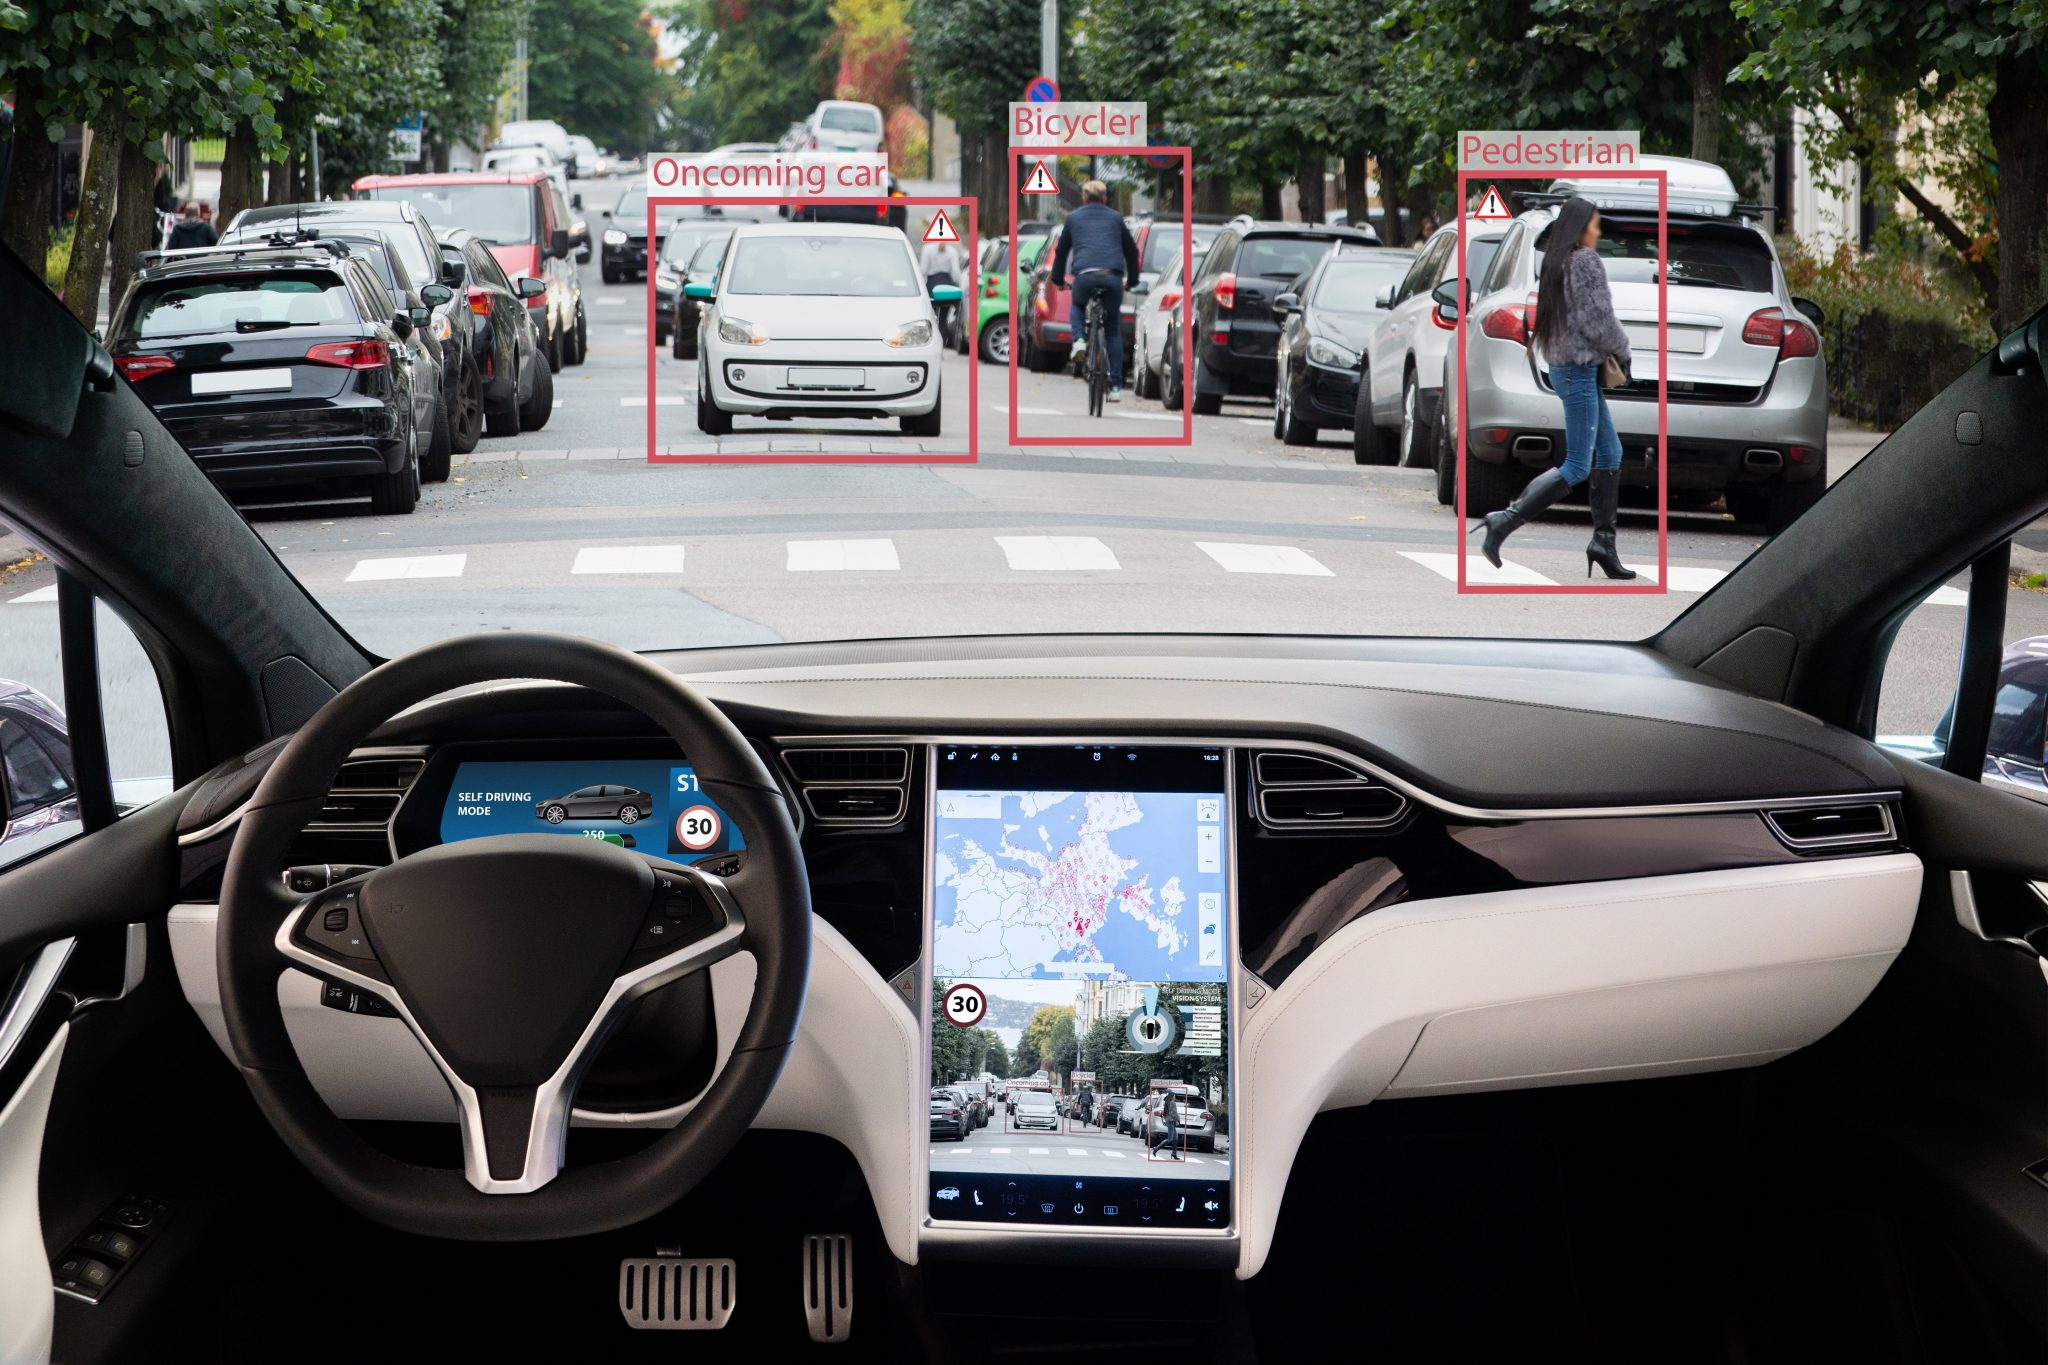 Who Is Liable for Self-Driving Car Accident?